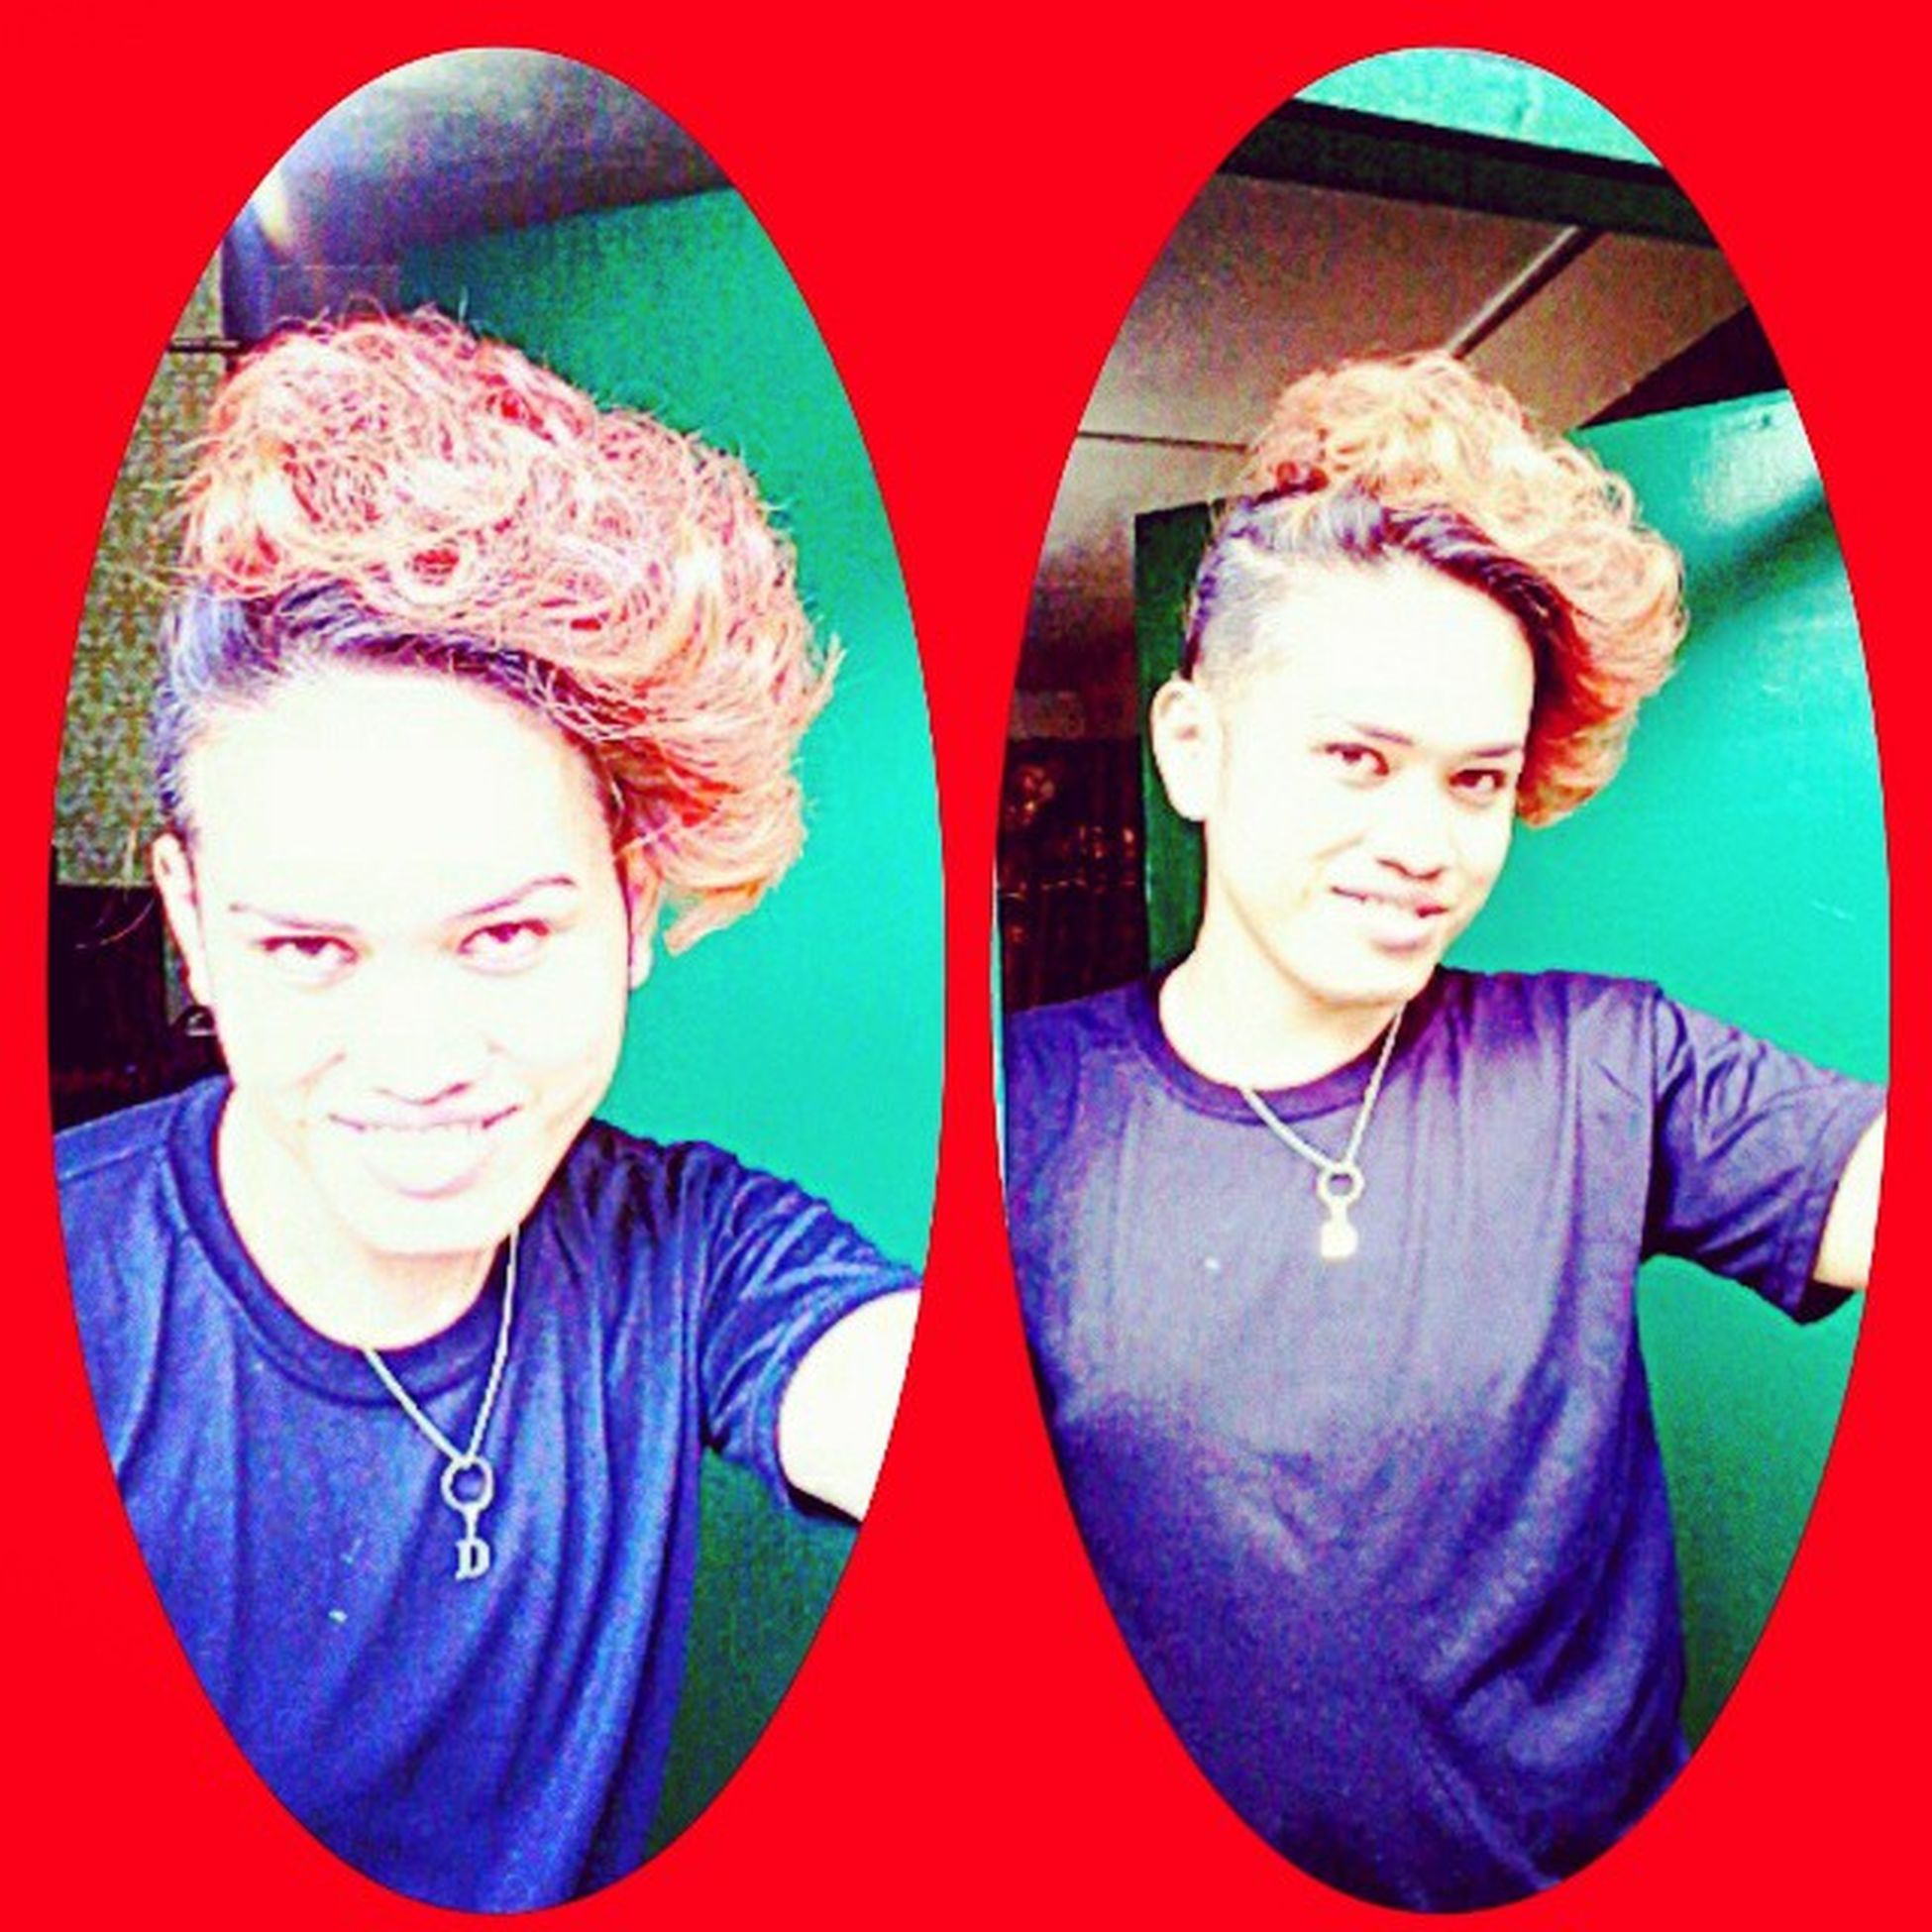 HairTransformation by @christian.samson.5496 in @aiky90 residences ...